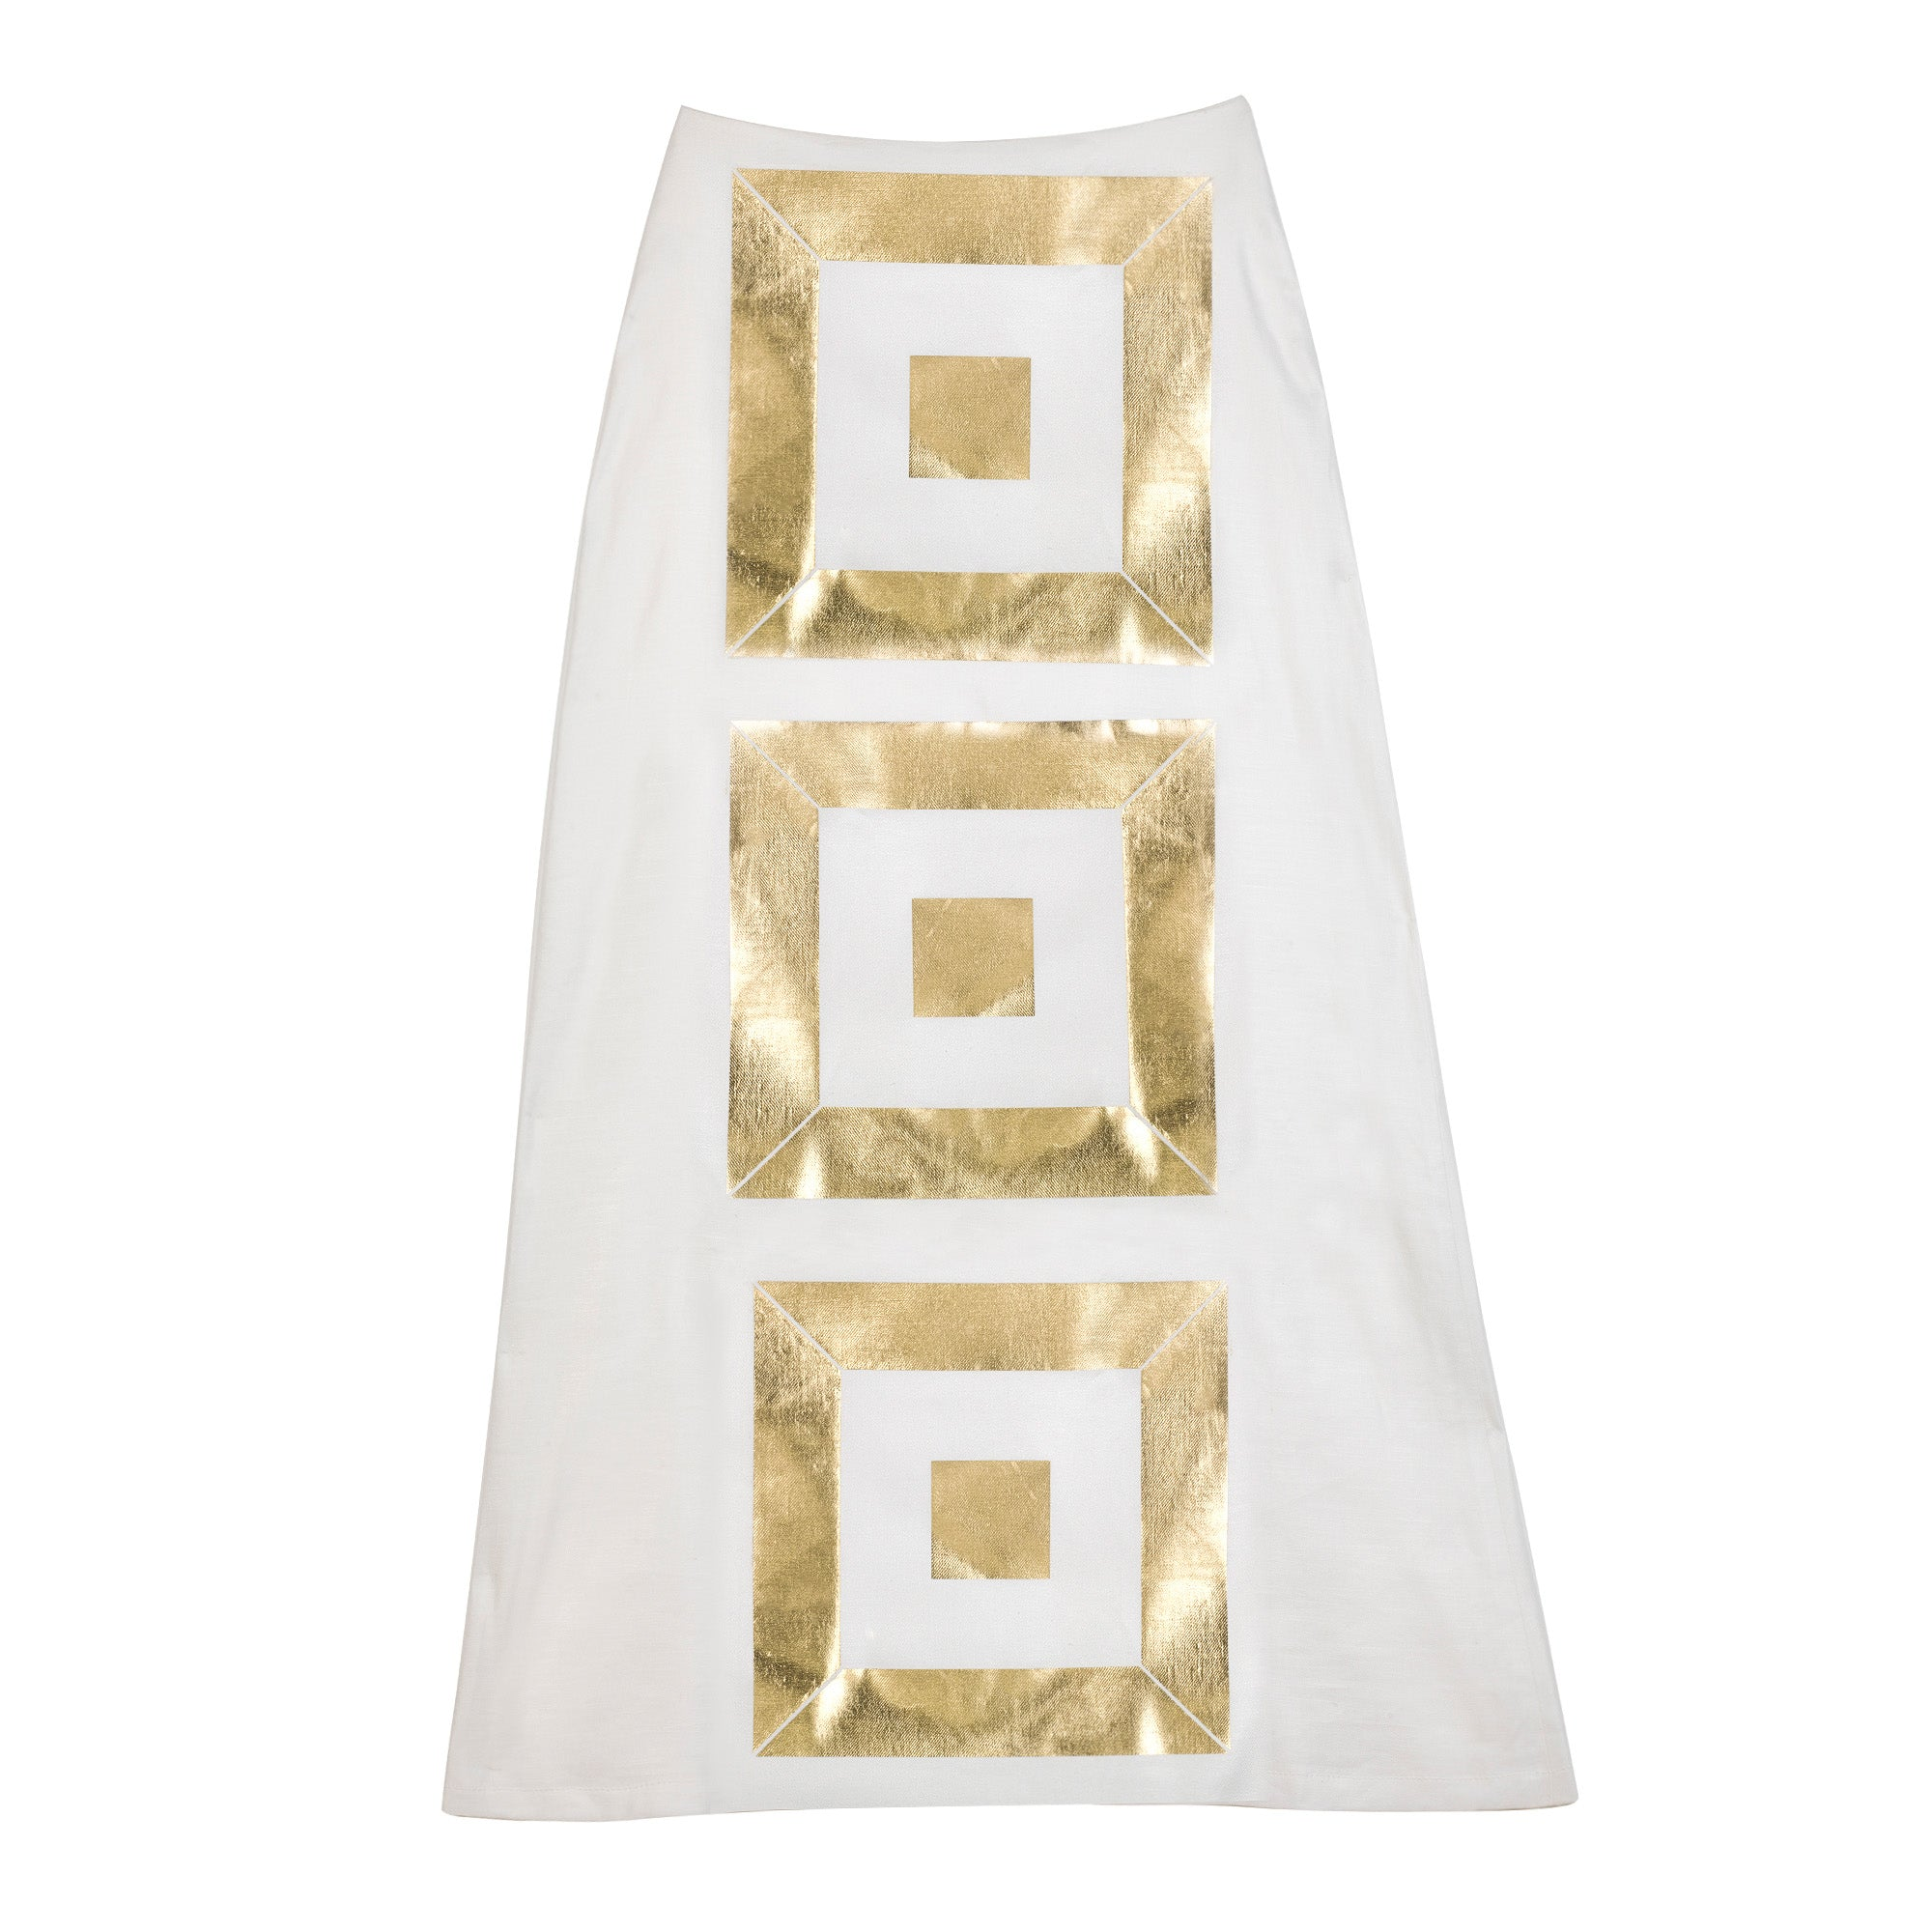 The Infinity Gold Skirt